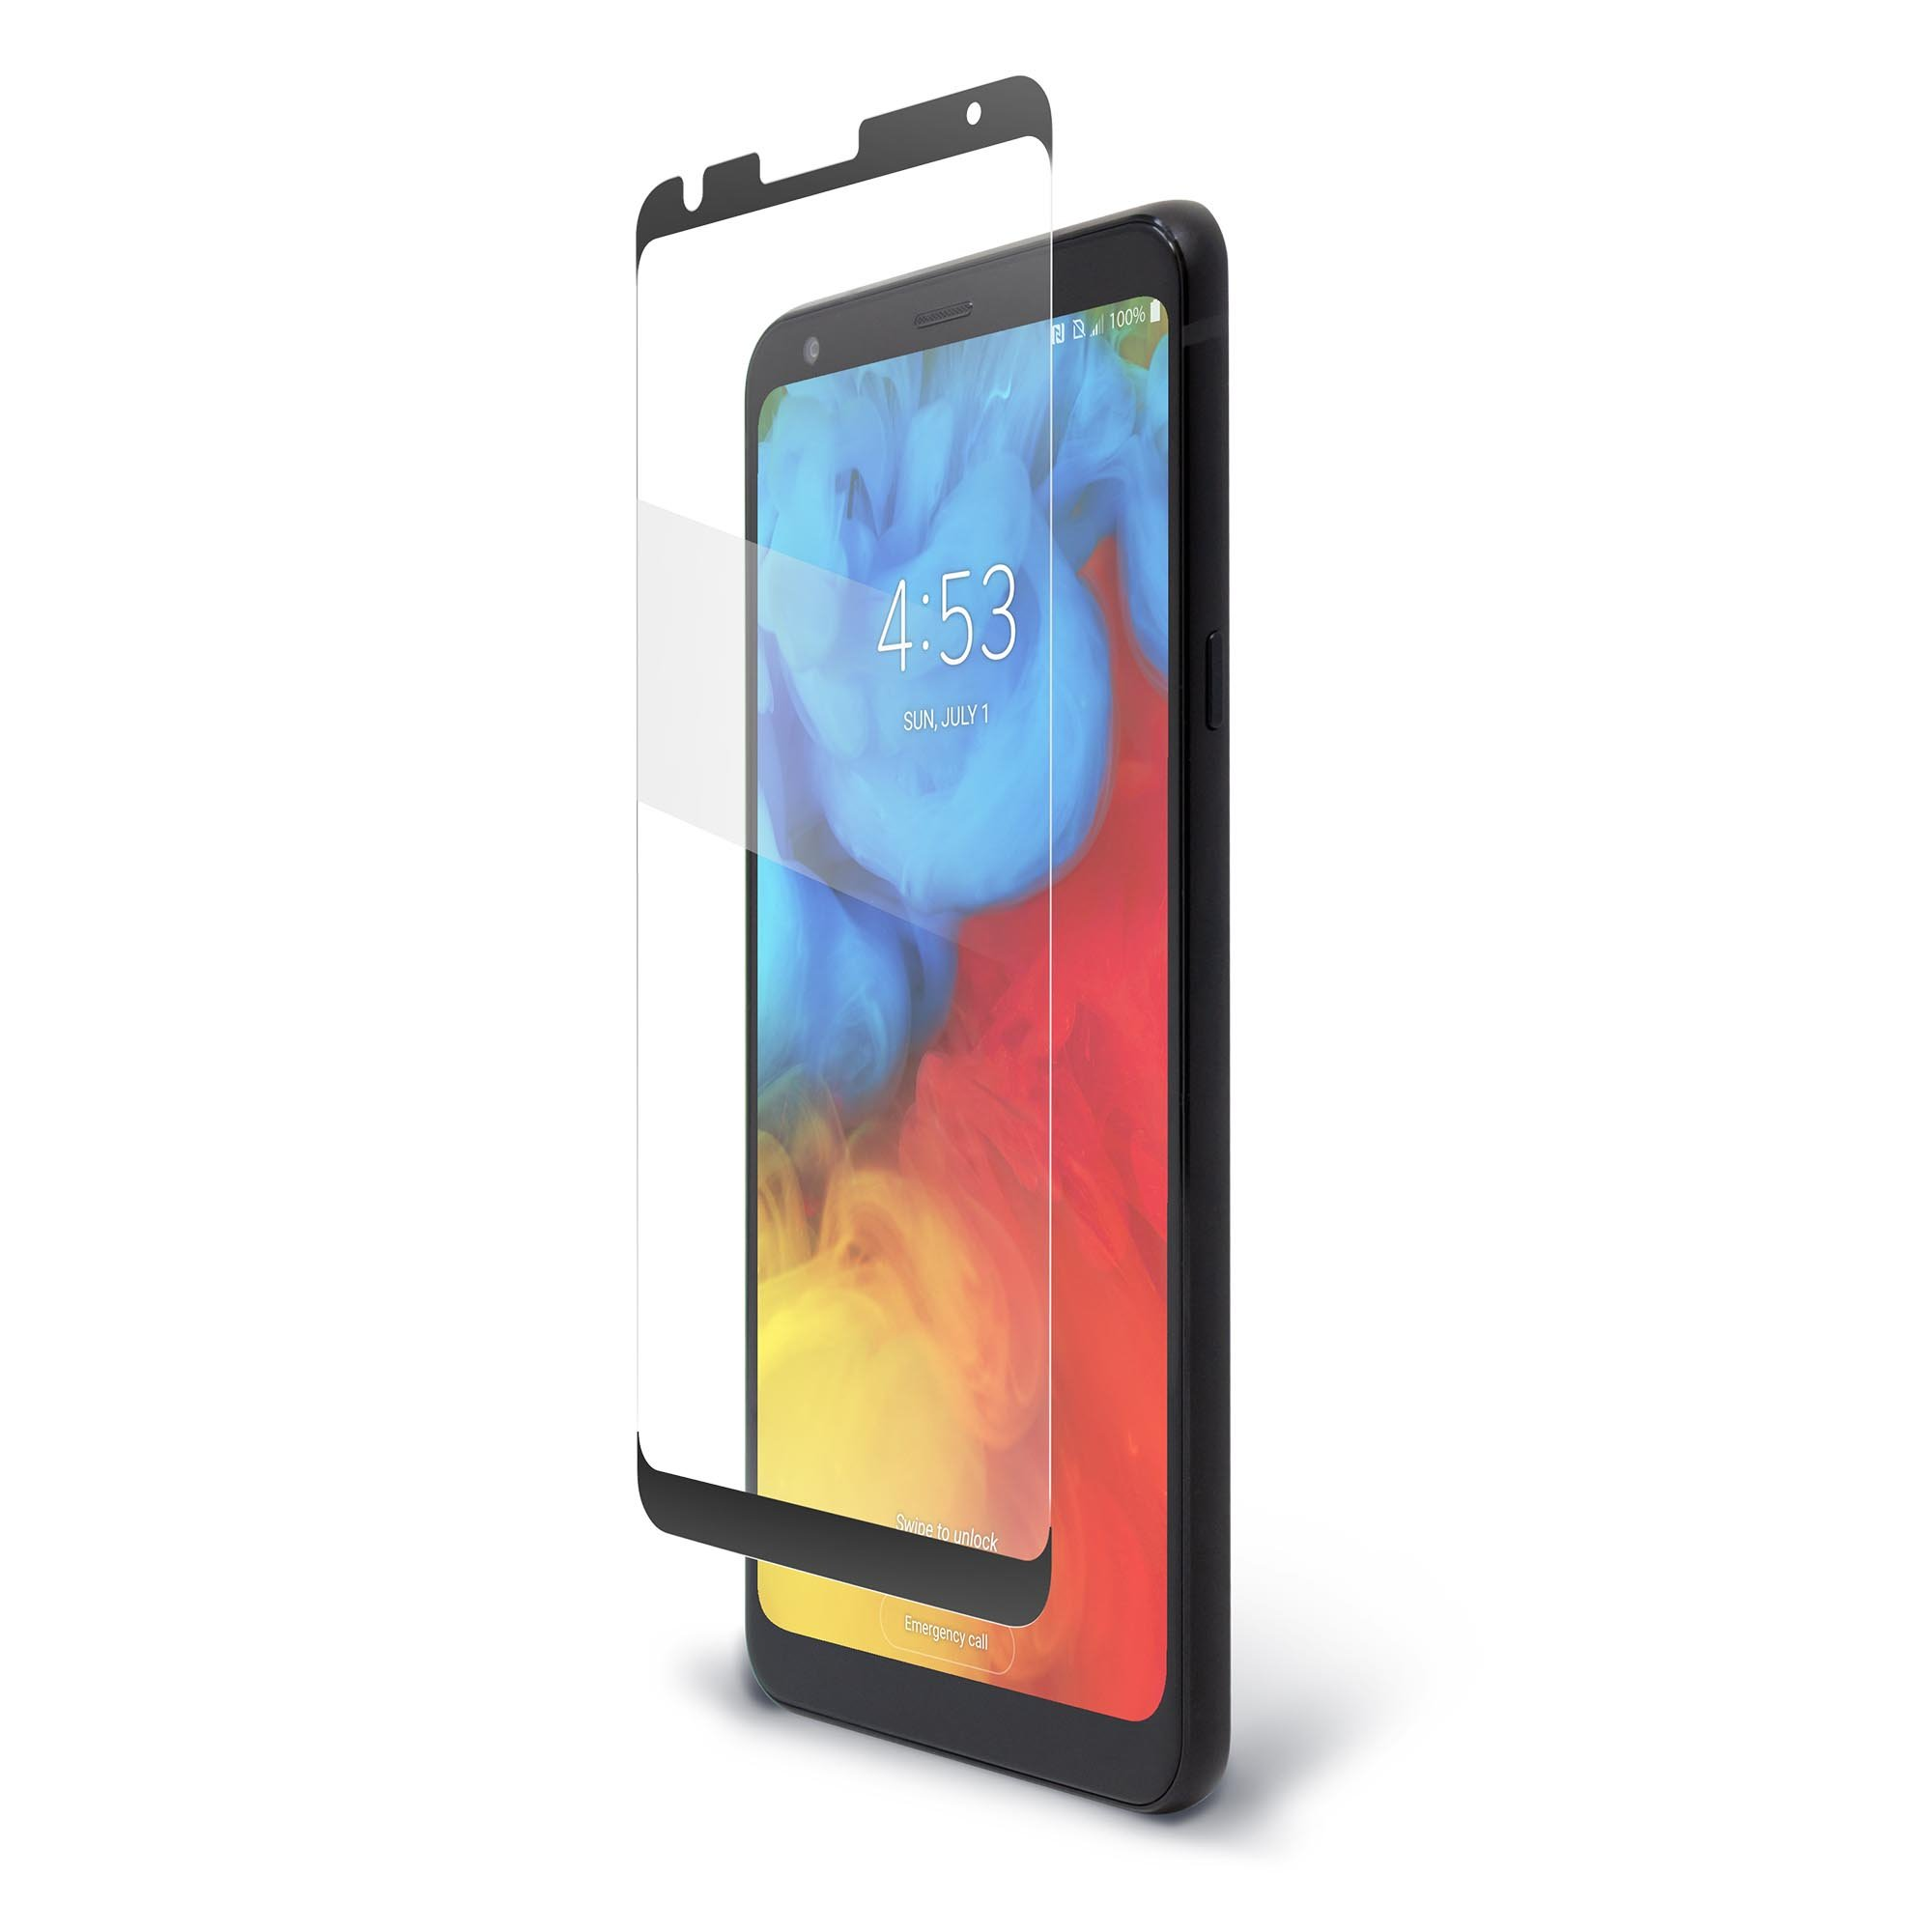 Stylo 4+ LG Stylo 4+ Cases, Clear Screen Protectors, Covers & Skins